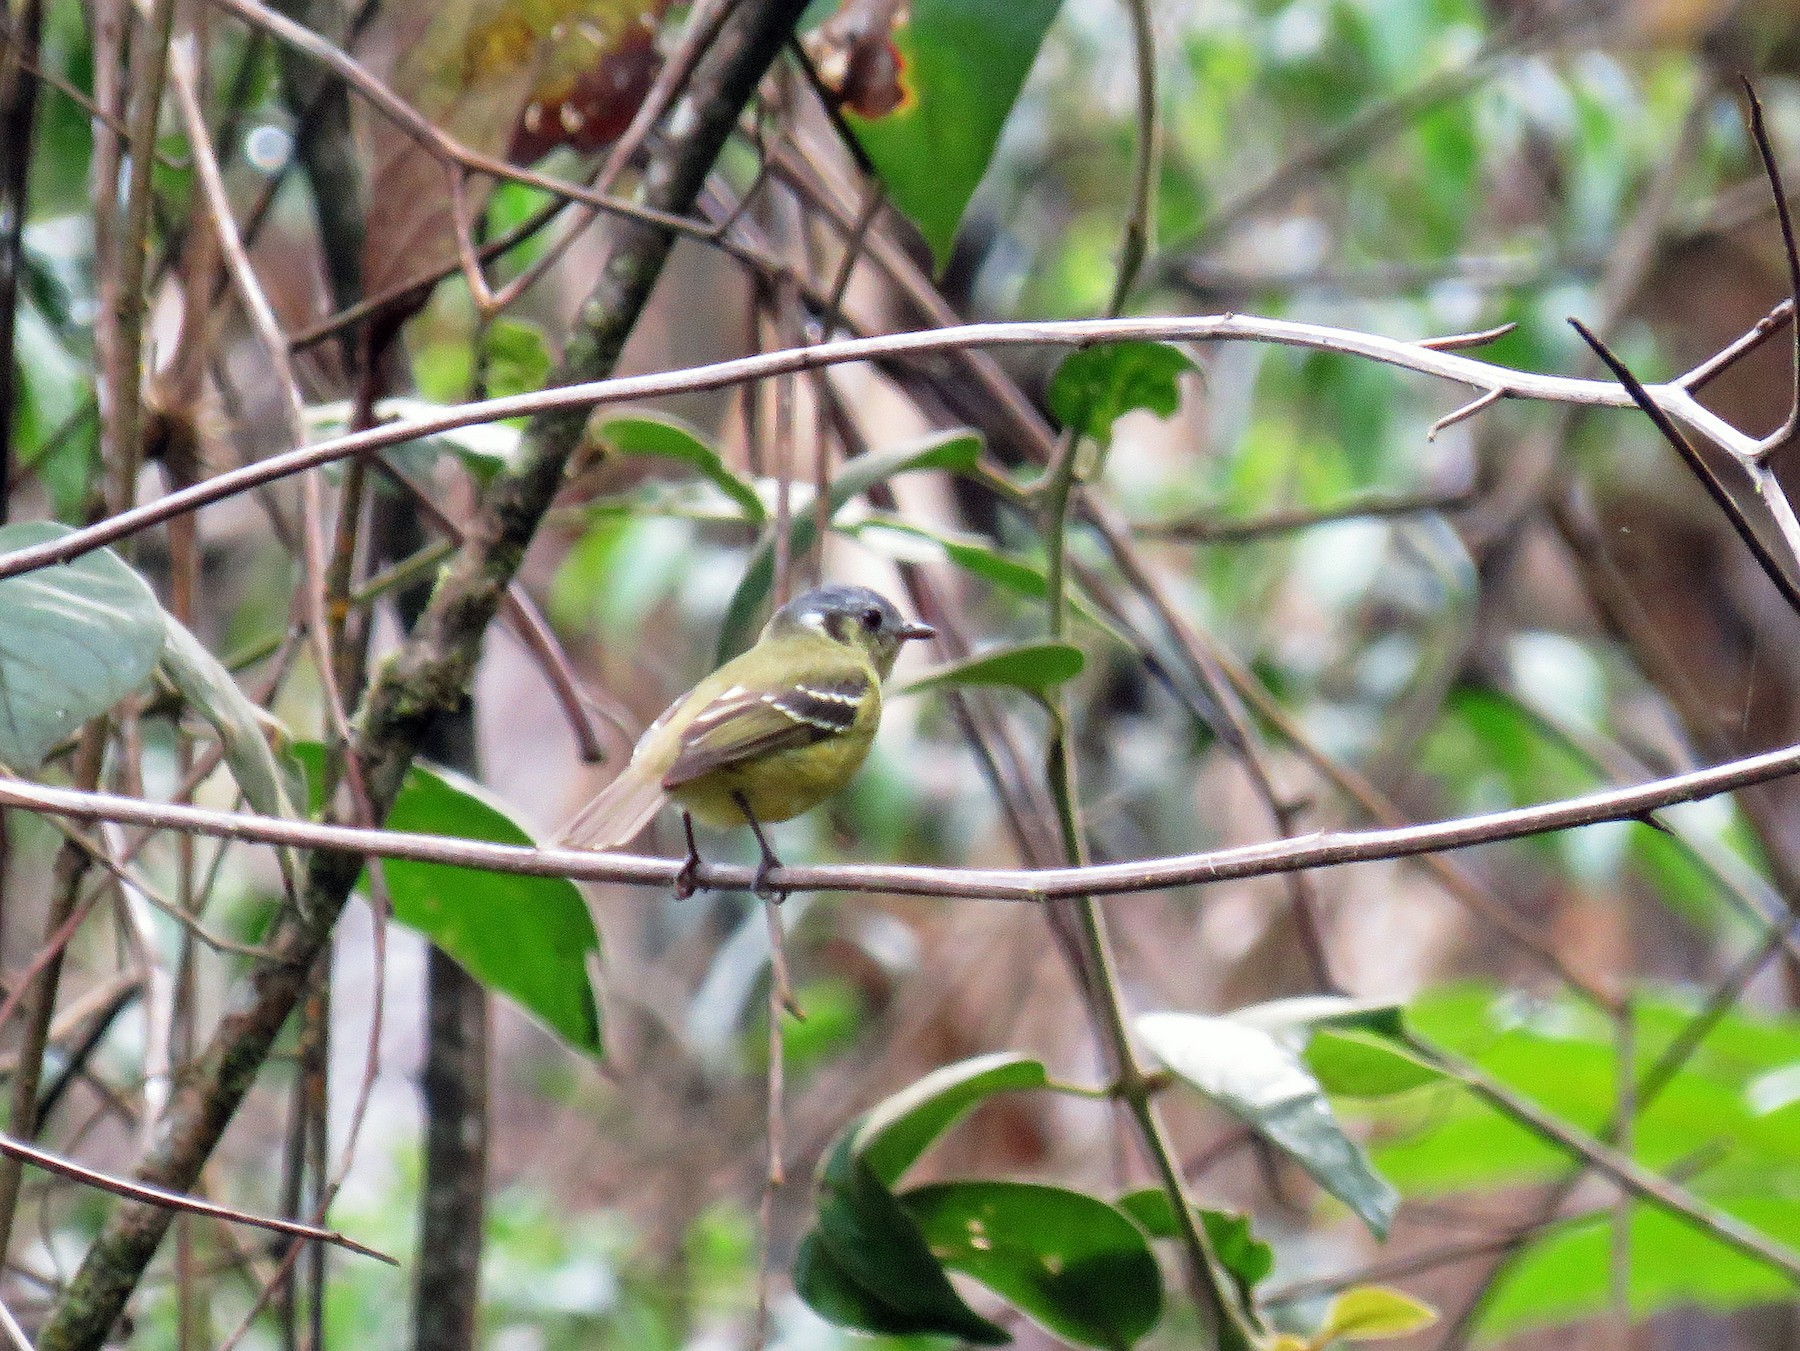 Ashy-headed Tyrannulet - Alfonso Escajadillo